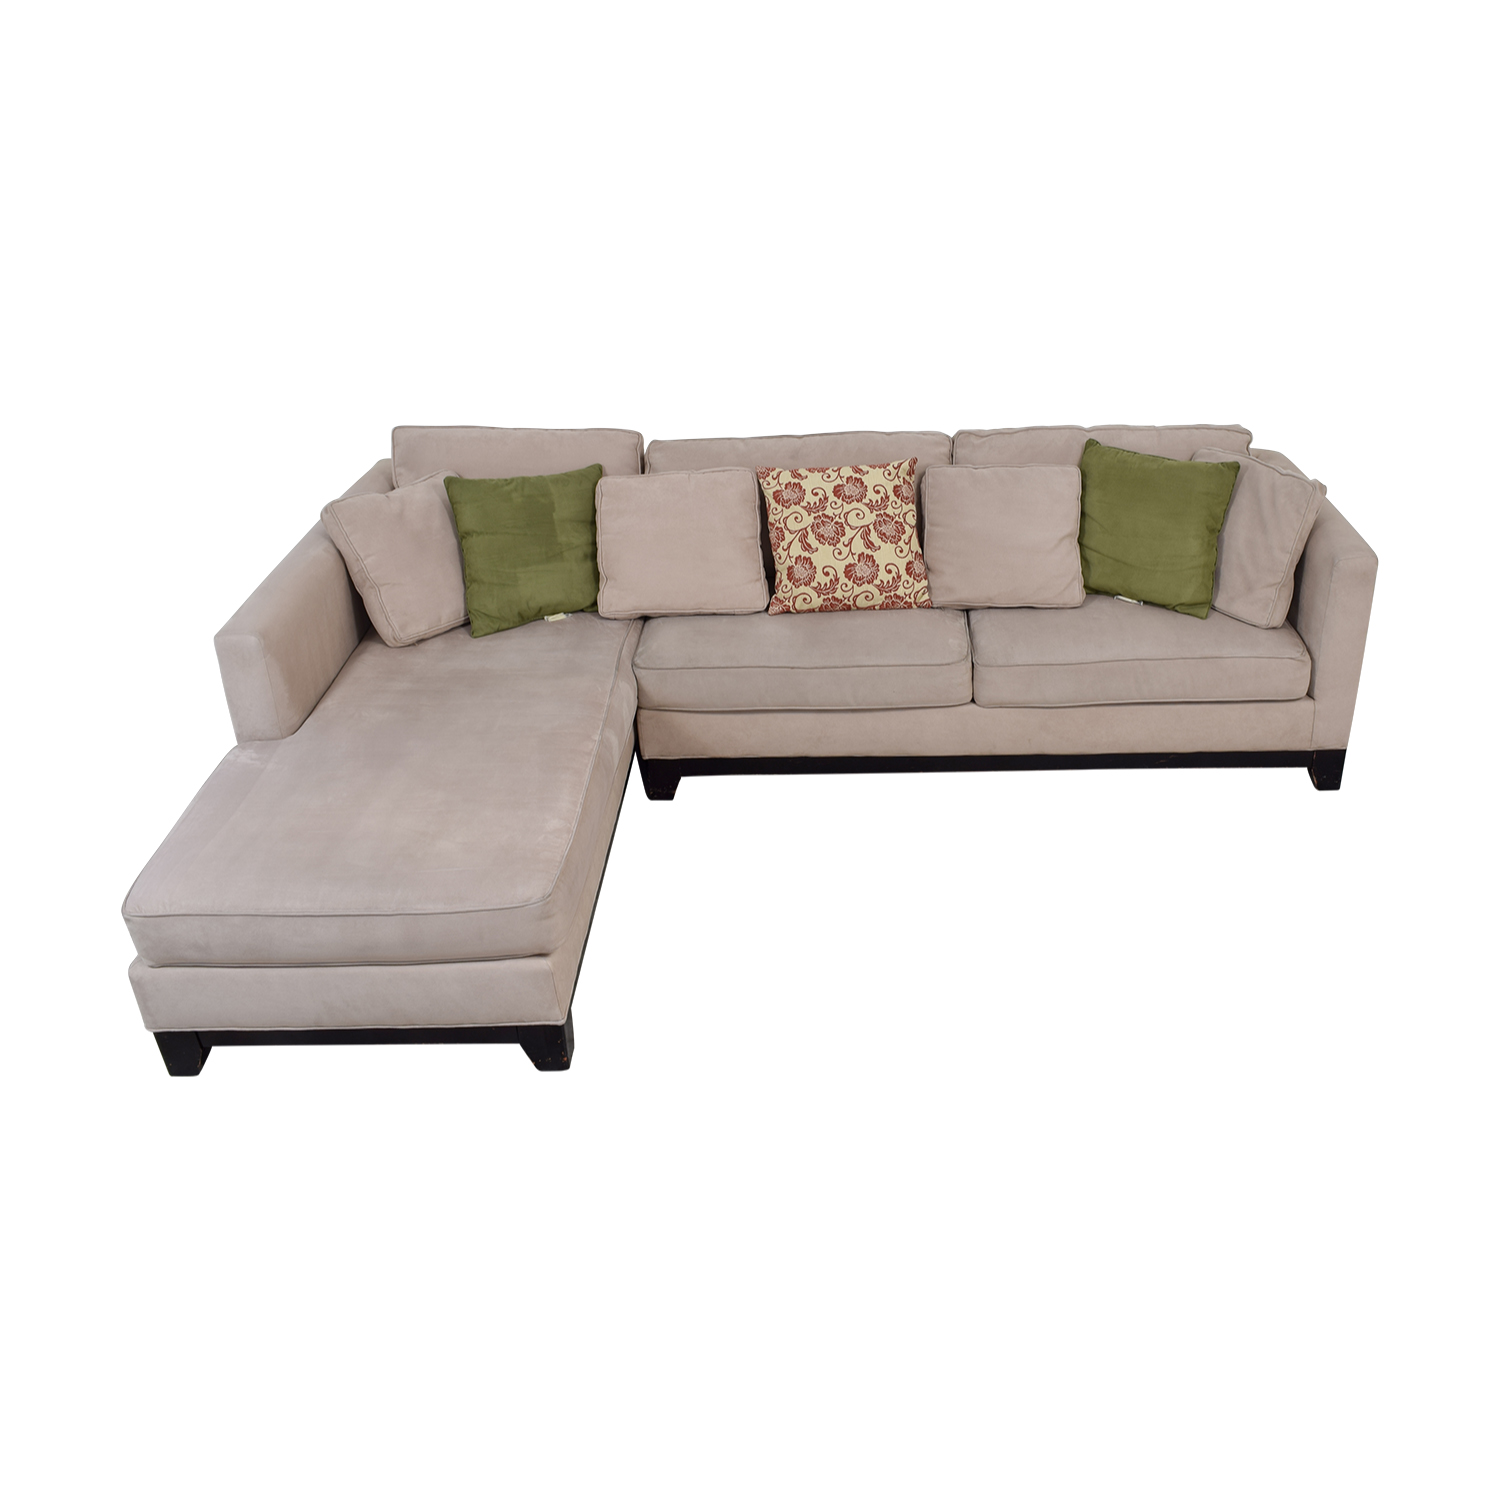 Admirable 76 Off Macys Macys Microfiber Taupe Sectional Sofa Sofas Short Links Chair Design For Home Short Linksinfo